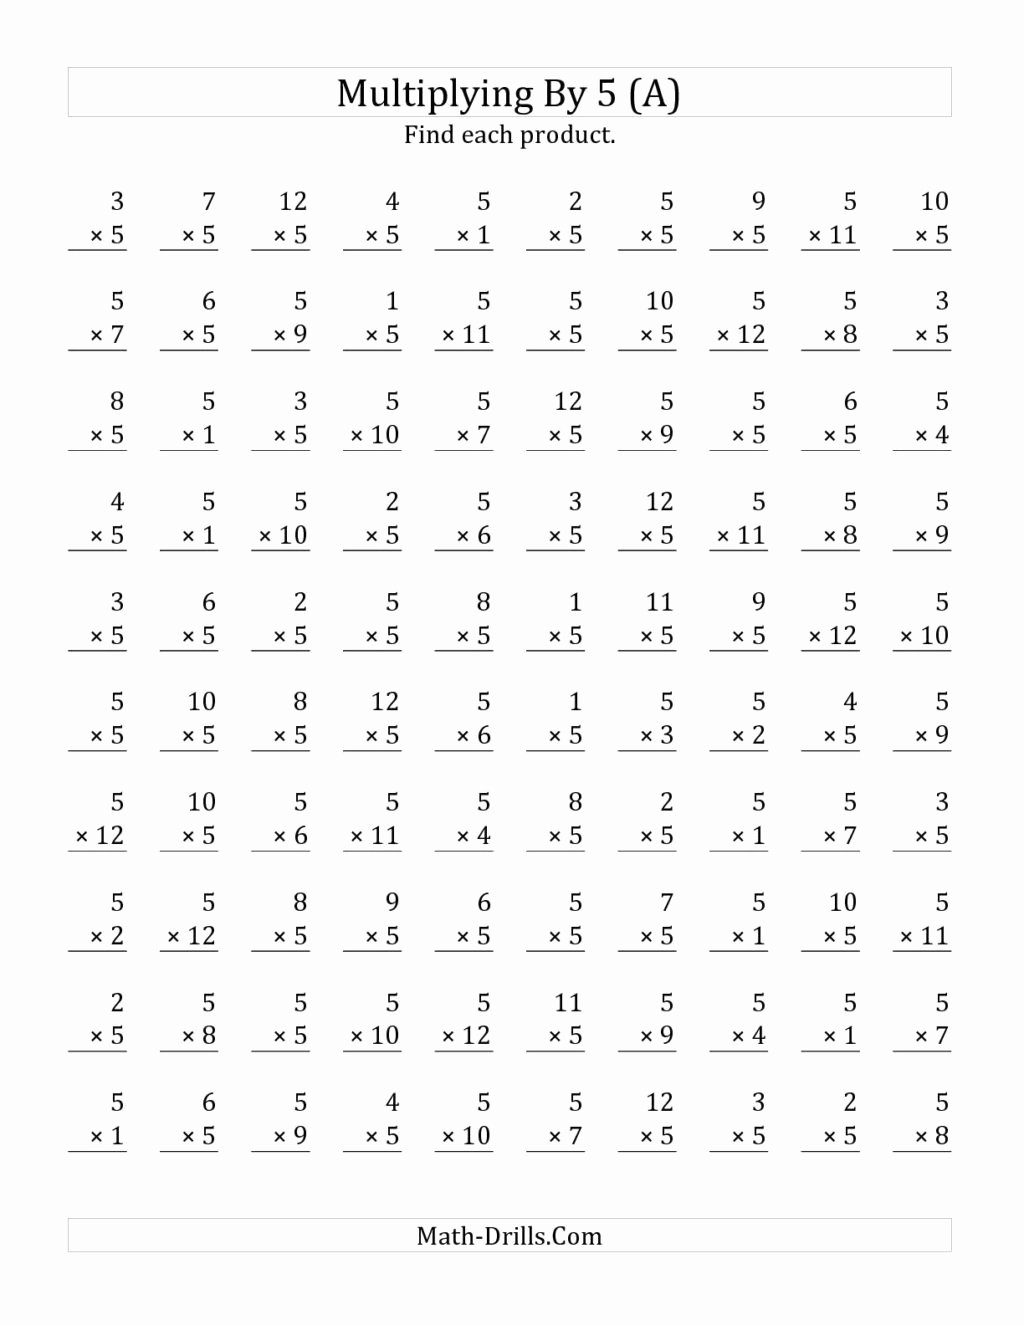 Multiplication Worksheets for 7th Graders Unique Worksheet 3rd Grade Multiplications to Print 4th 5th 7th